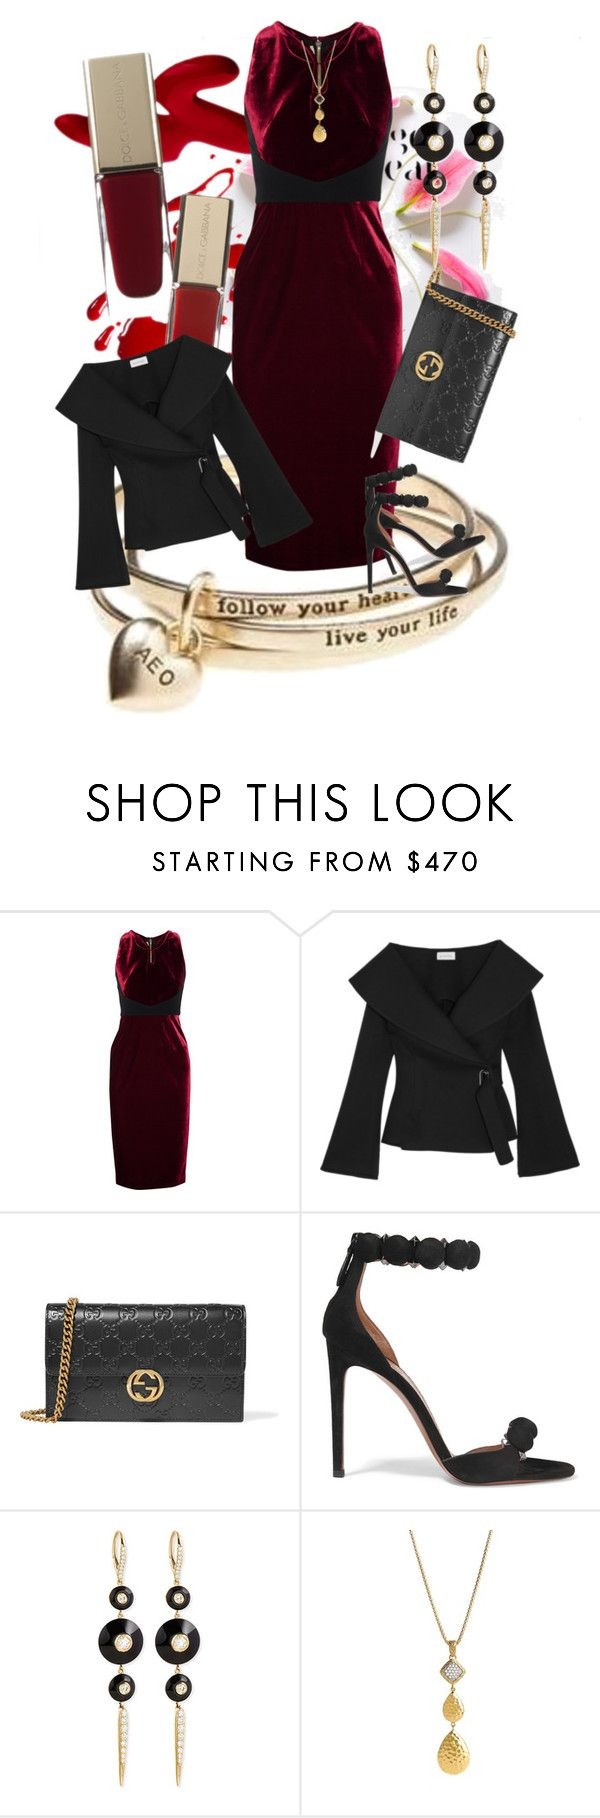 """""""Turning Heads"""" by rita257 ❤ liked on Polyvore featuring American Eagle Outfitters, Roland Mouret, Beaufille, Gucci, Alaïa, Maria Canale and John Hardy"""